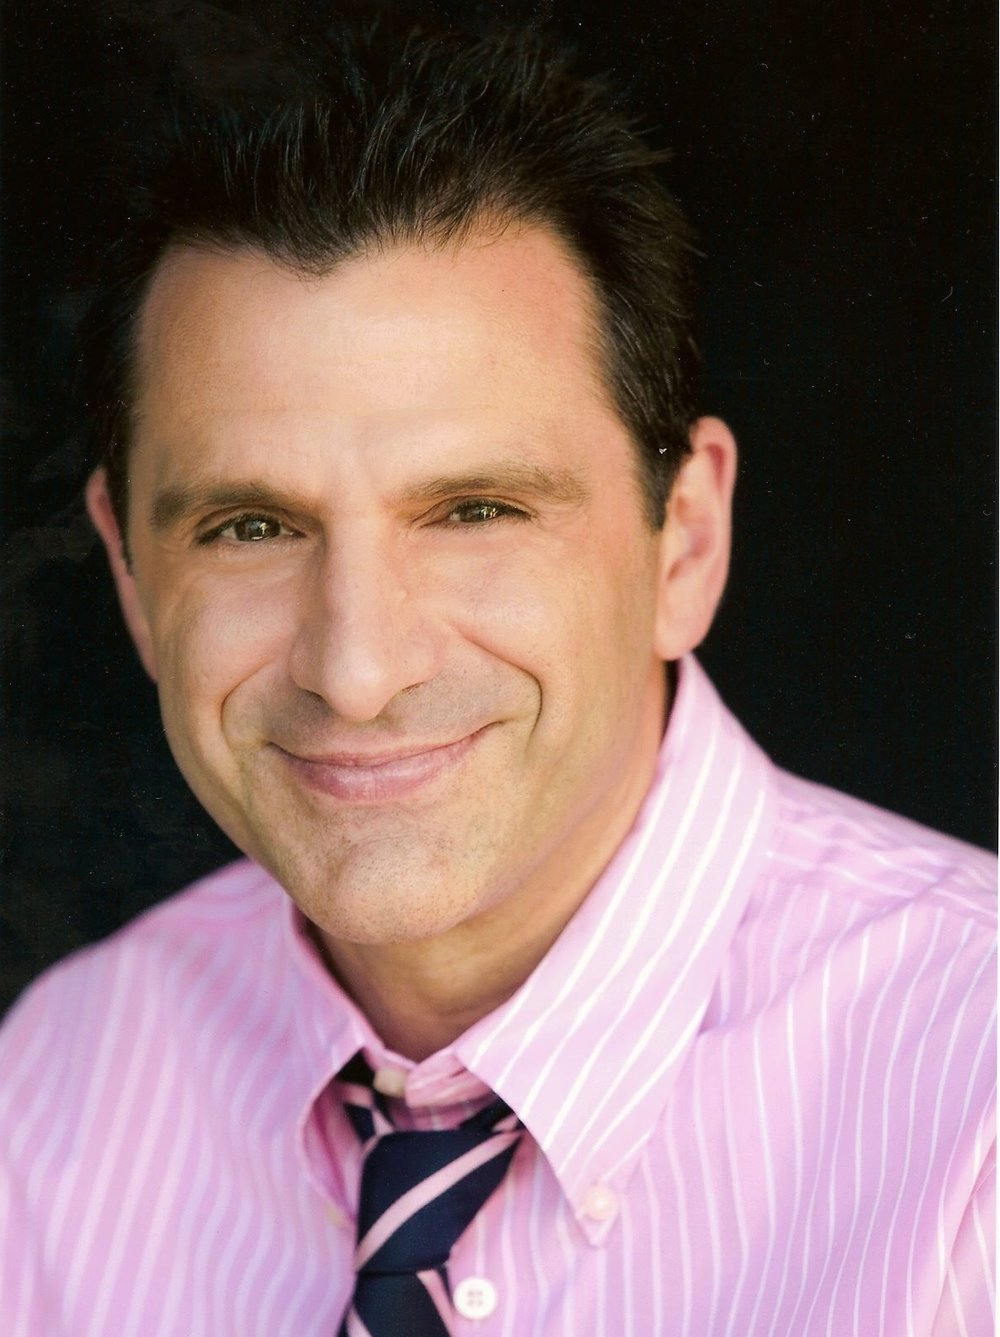 Peter Allas - Peter Allas studied under Master Broadway director Milton Katselas for over 21 years and has been associated with the Beverly Hills Playhouse as a teacher for over 10 years from